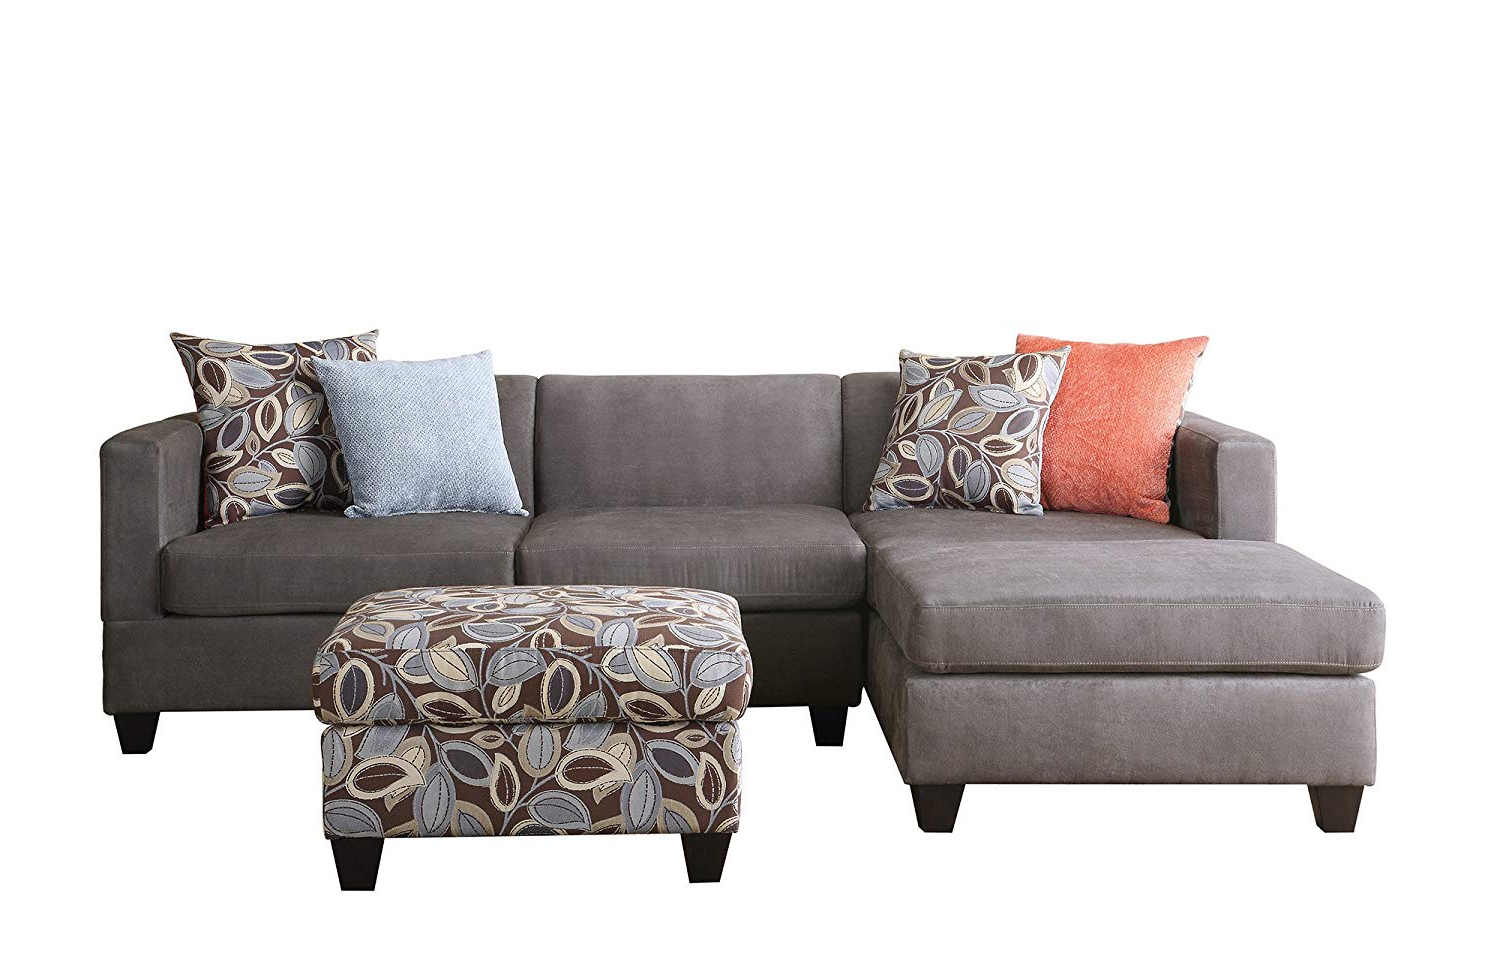 2 Piece Sectional With Chaise – Tidex Inside Most Recently Released Arrowmask 2 Piece Sectionals With Laf Chaise (Gallery 14 of 20)